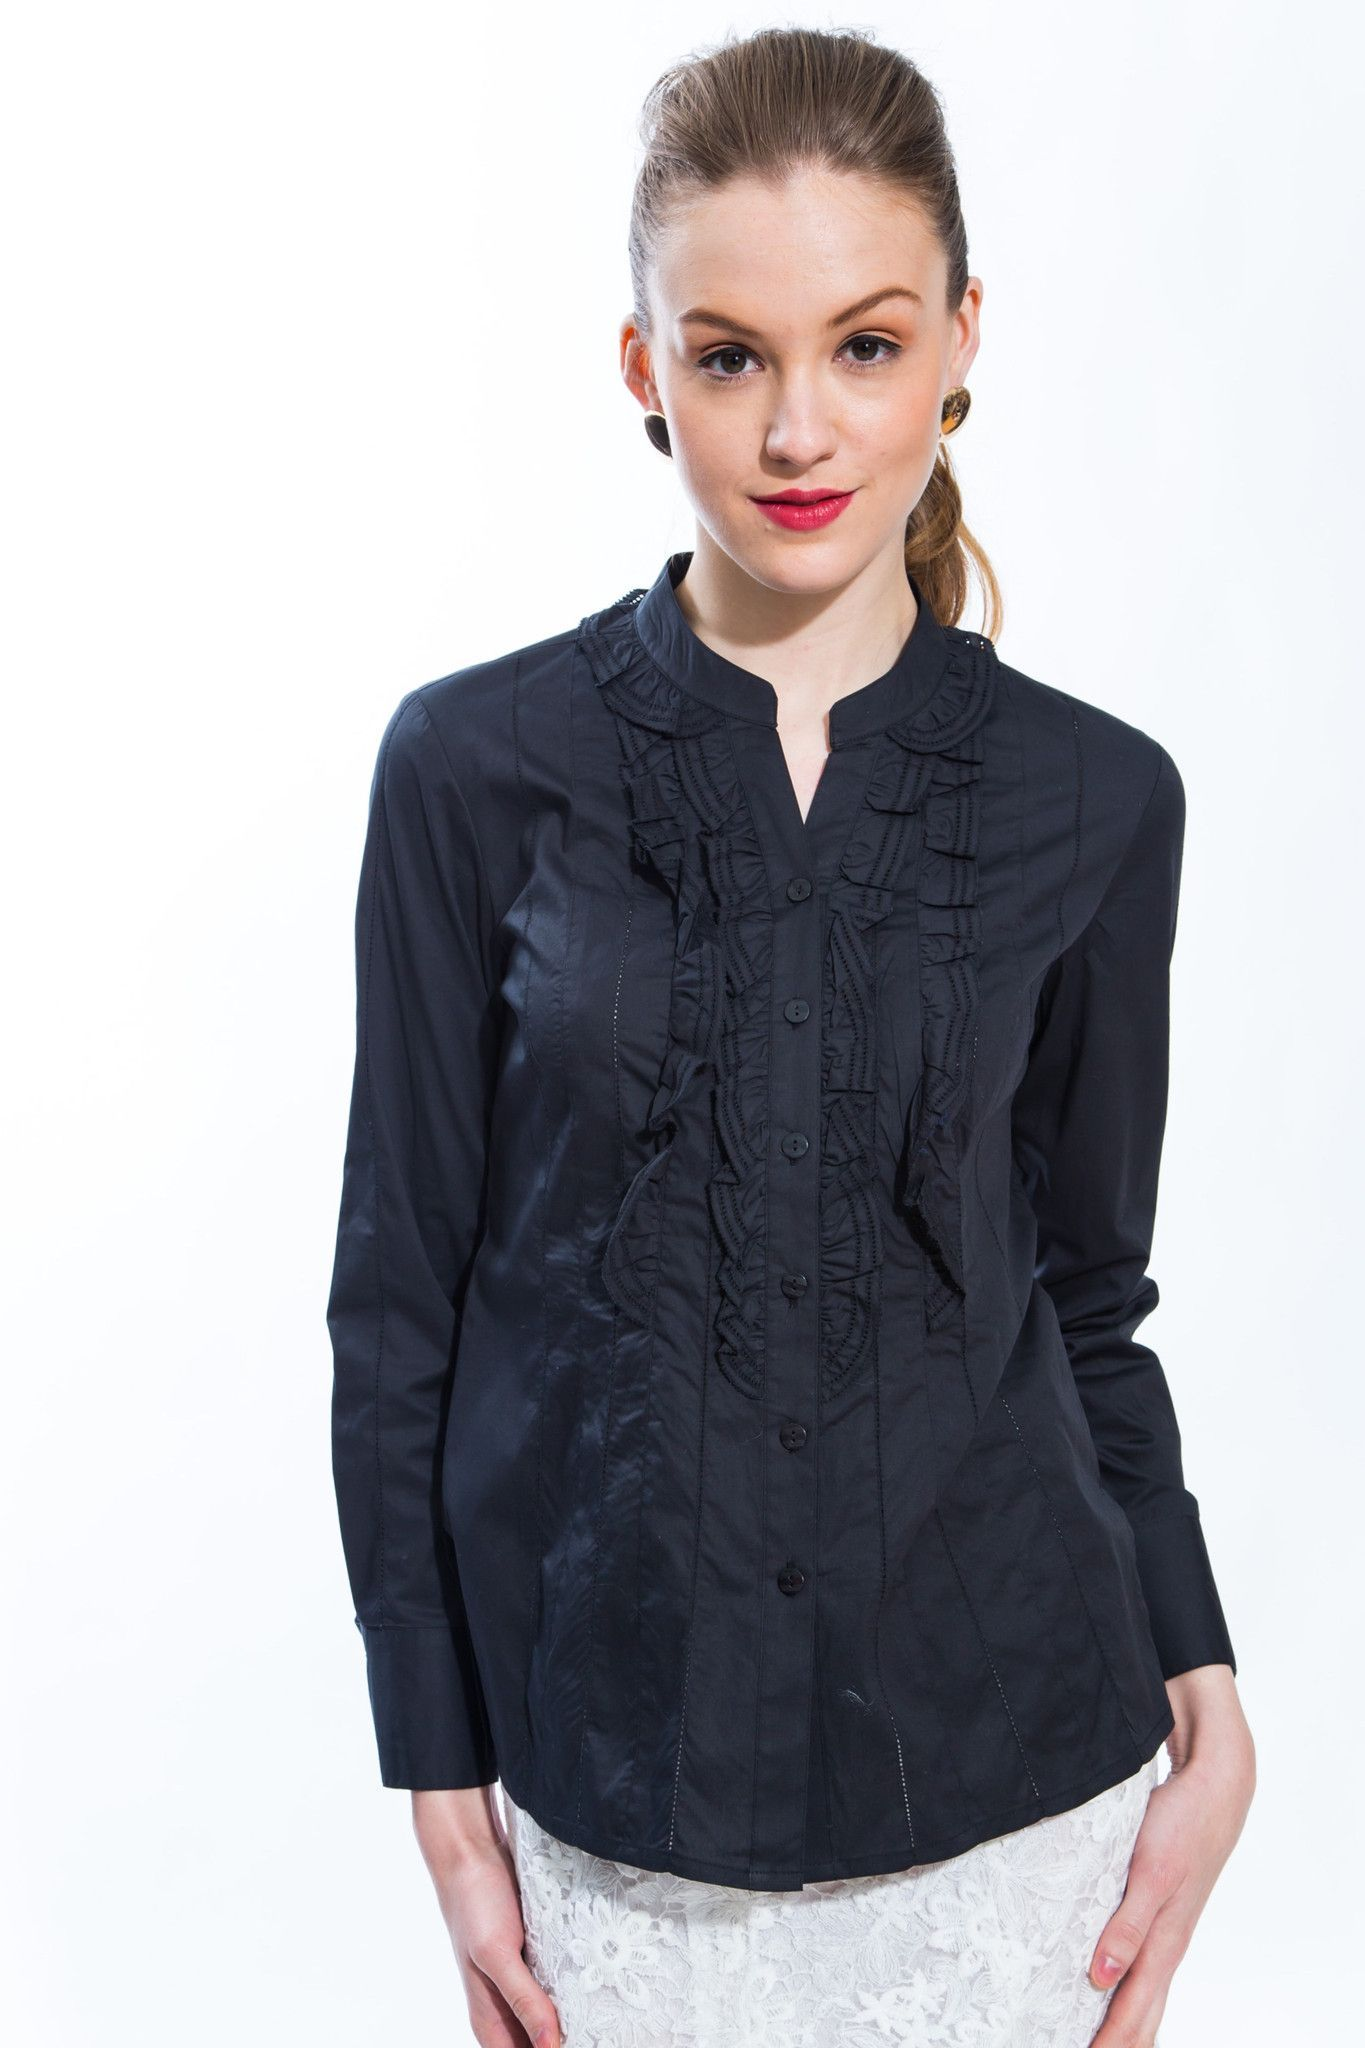 Ruffle Front Cotton Blouse (Black) Style 8143 | Ruffle, Products ...